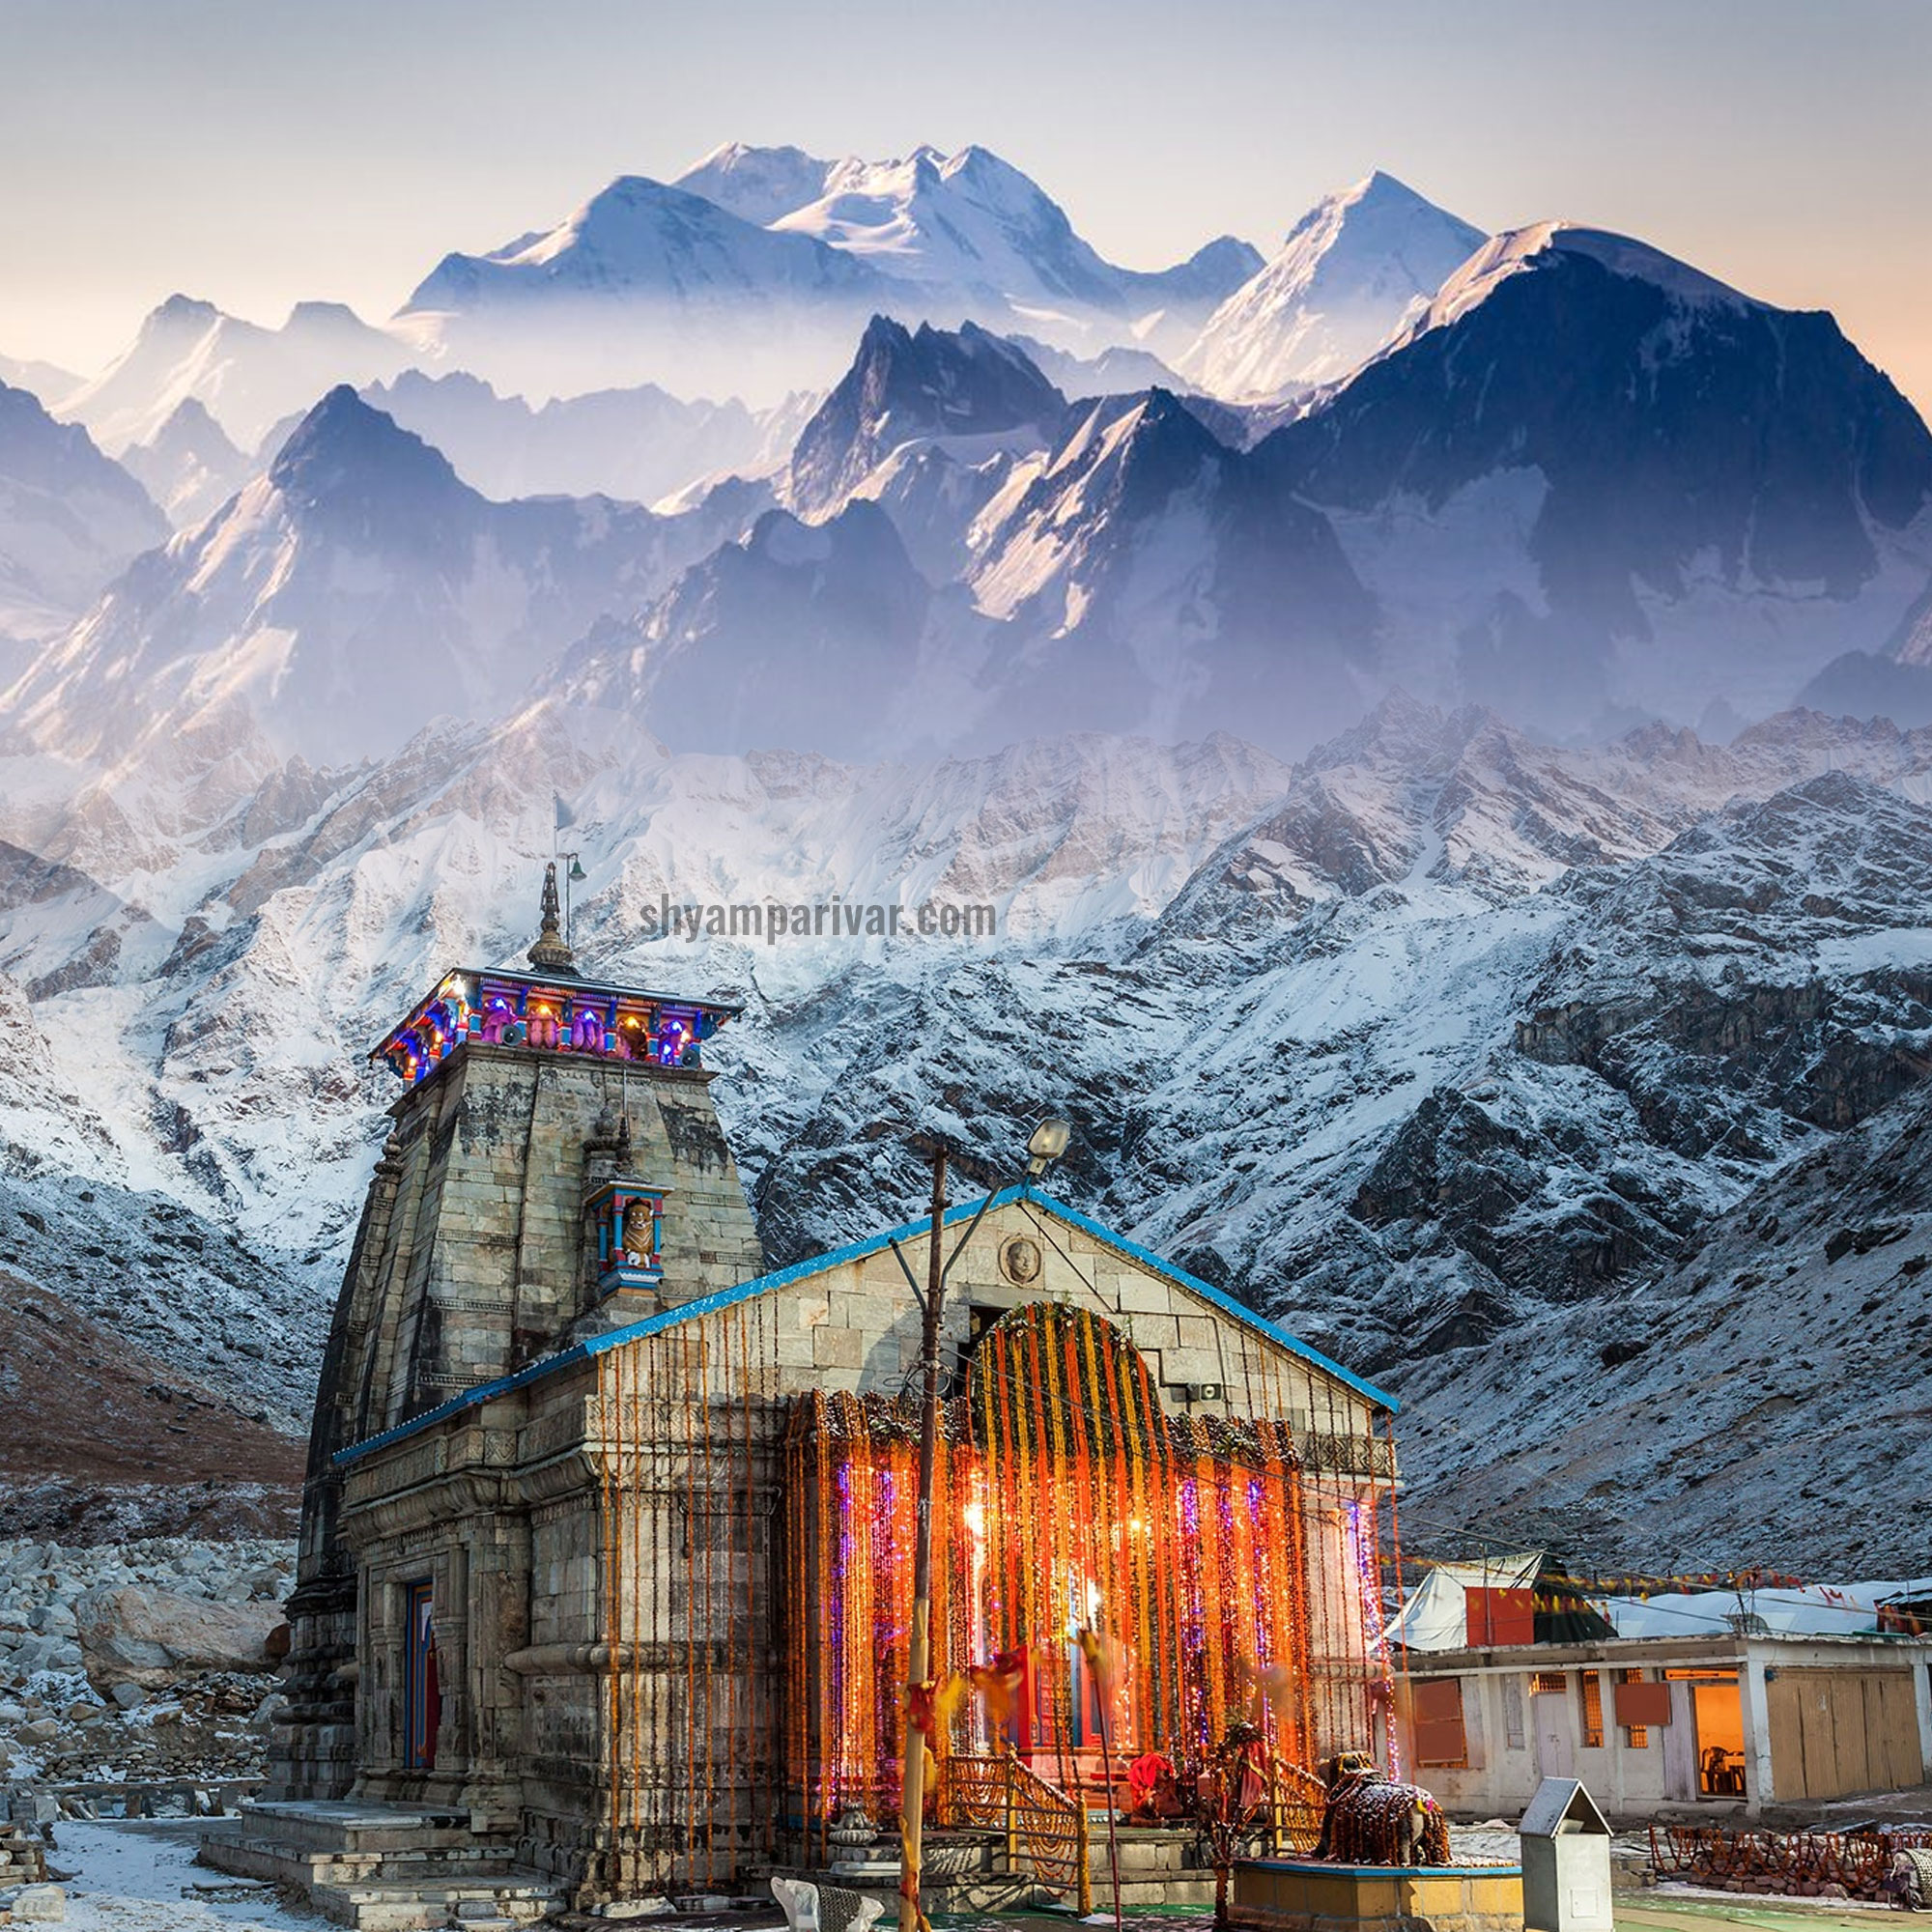 God shiva kedarnath temple